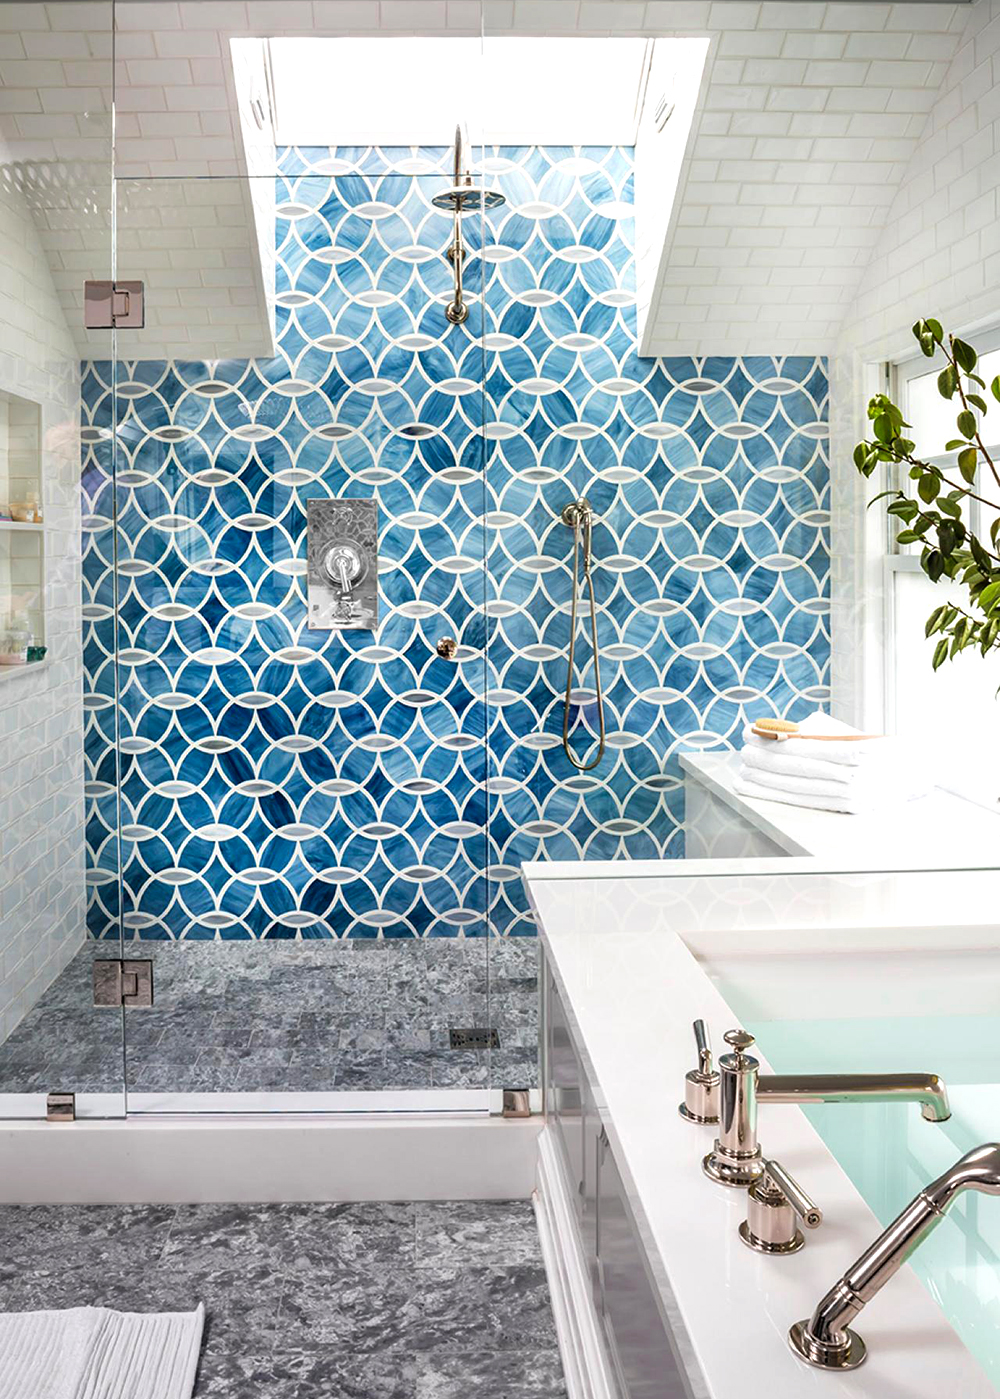 5 Summer Tile Trends to Try for Your Next Home Project